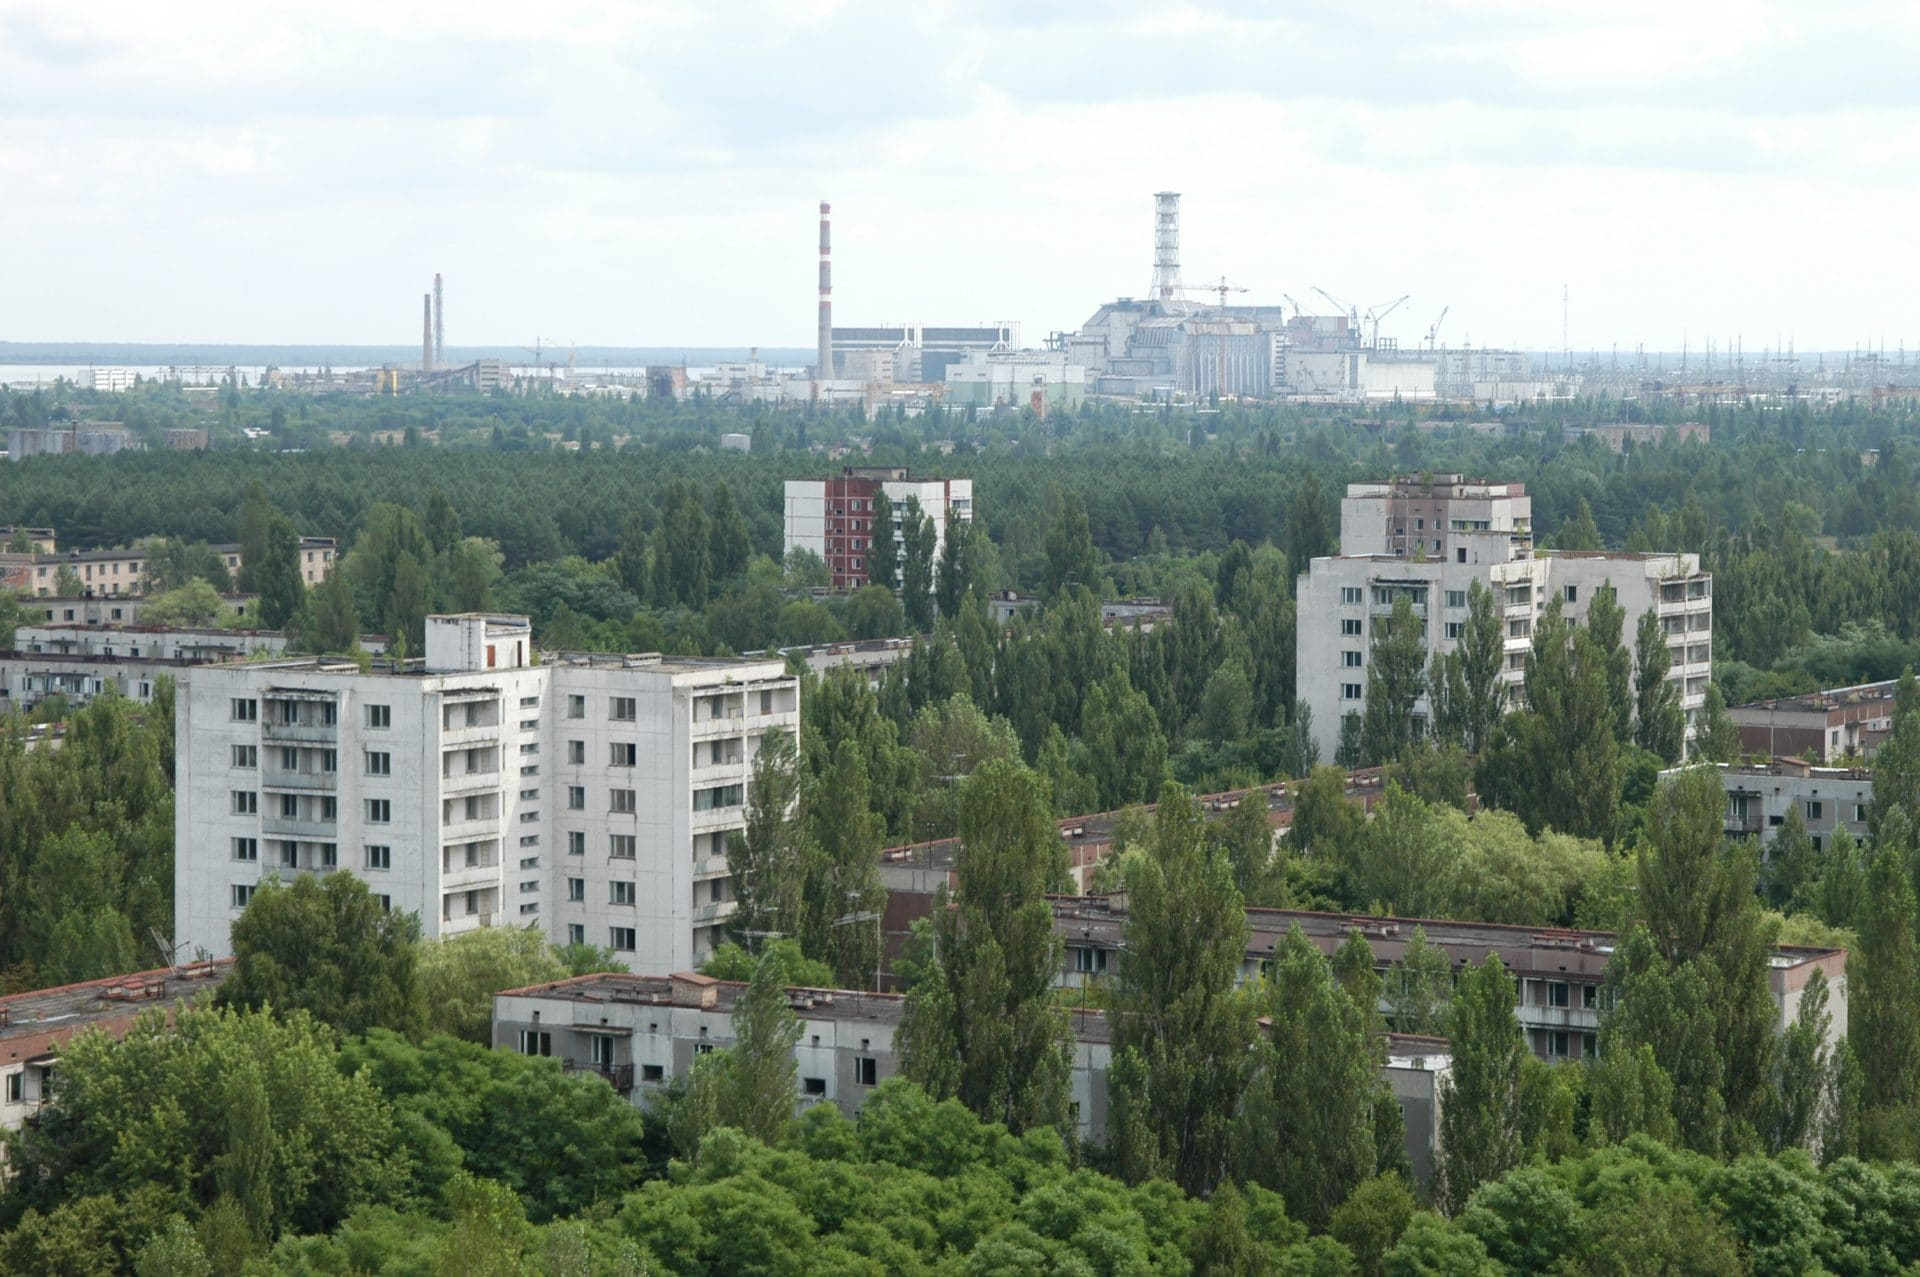 The town of Pripyat, three kilometers from the Chernobyl Nuclear Power Plant, was abandoned after the April 1986 nuclear disaster.